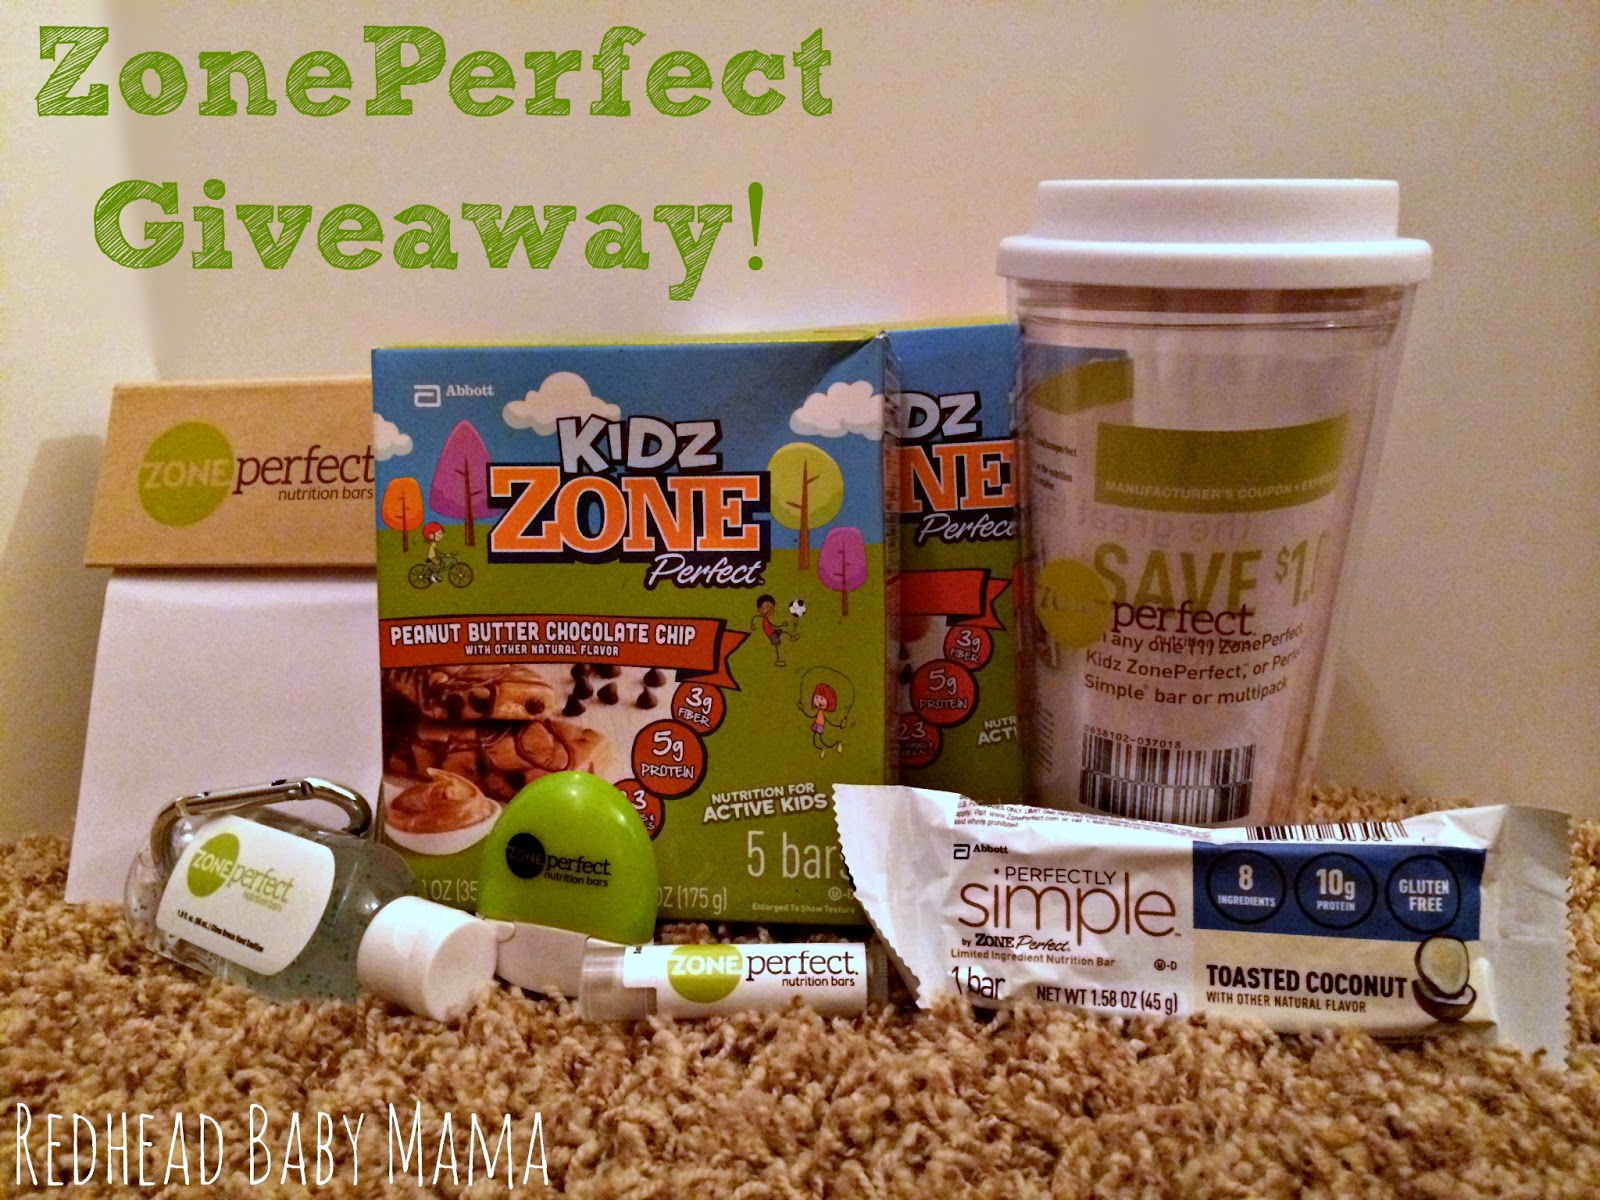 ZonePerfect Giveaway with Redhead Baby Mama